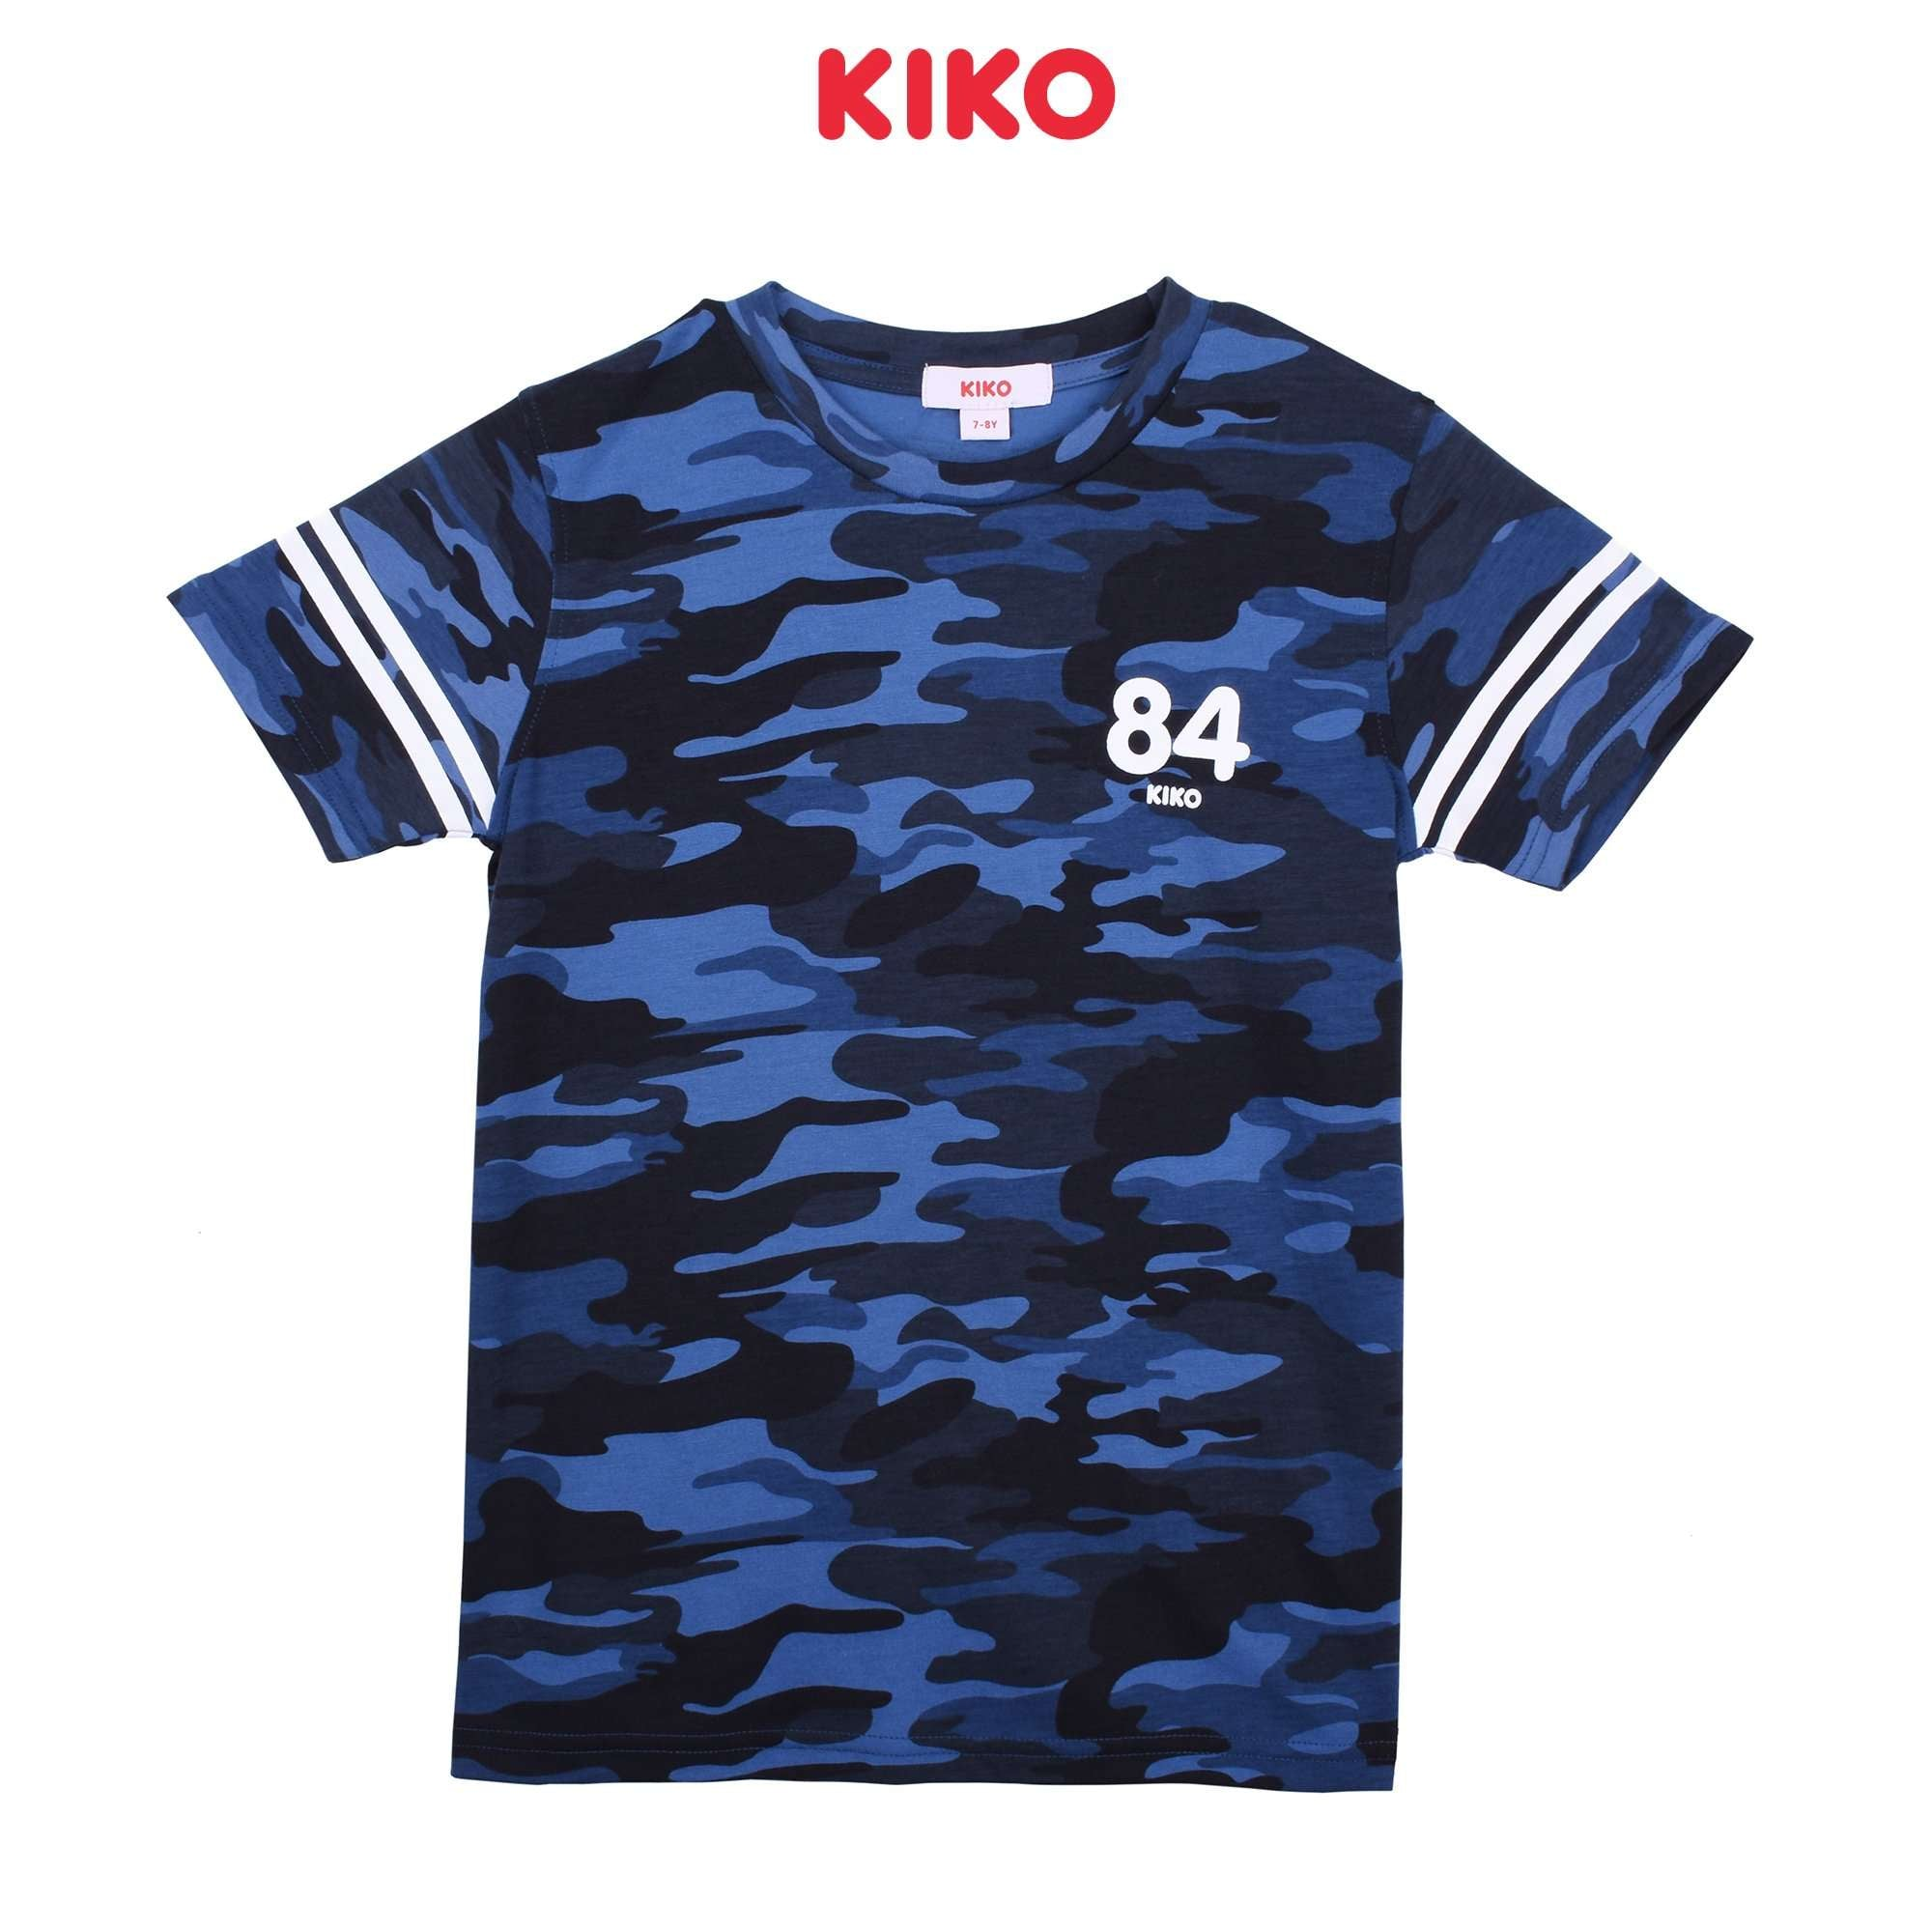 KIKO Boy Short Sleeve Tee - Blue K923103-1118-L5 : Buy KIKO online at CMG.MY